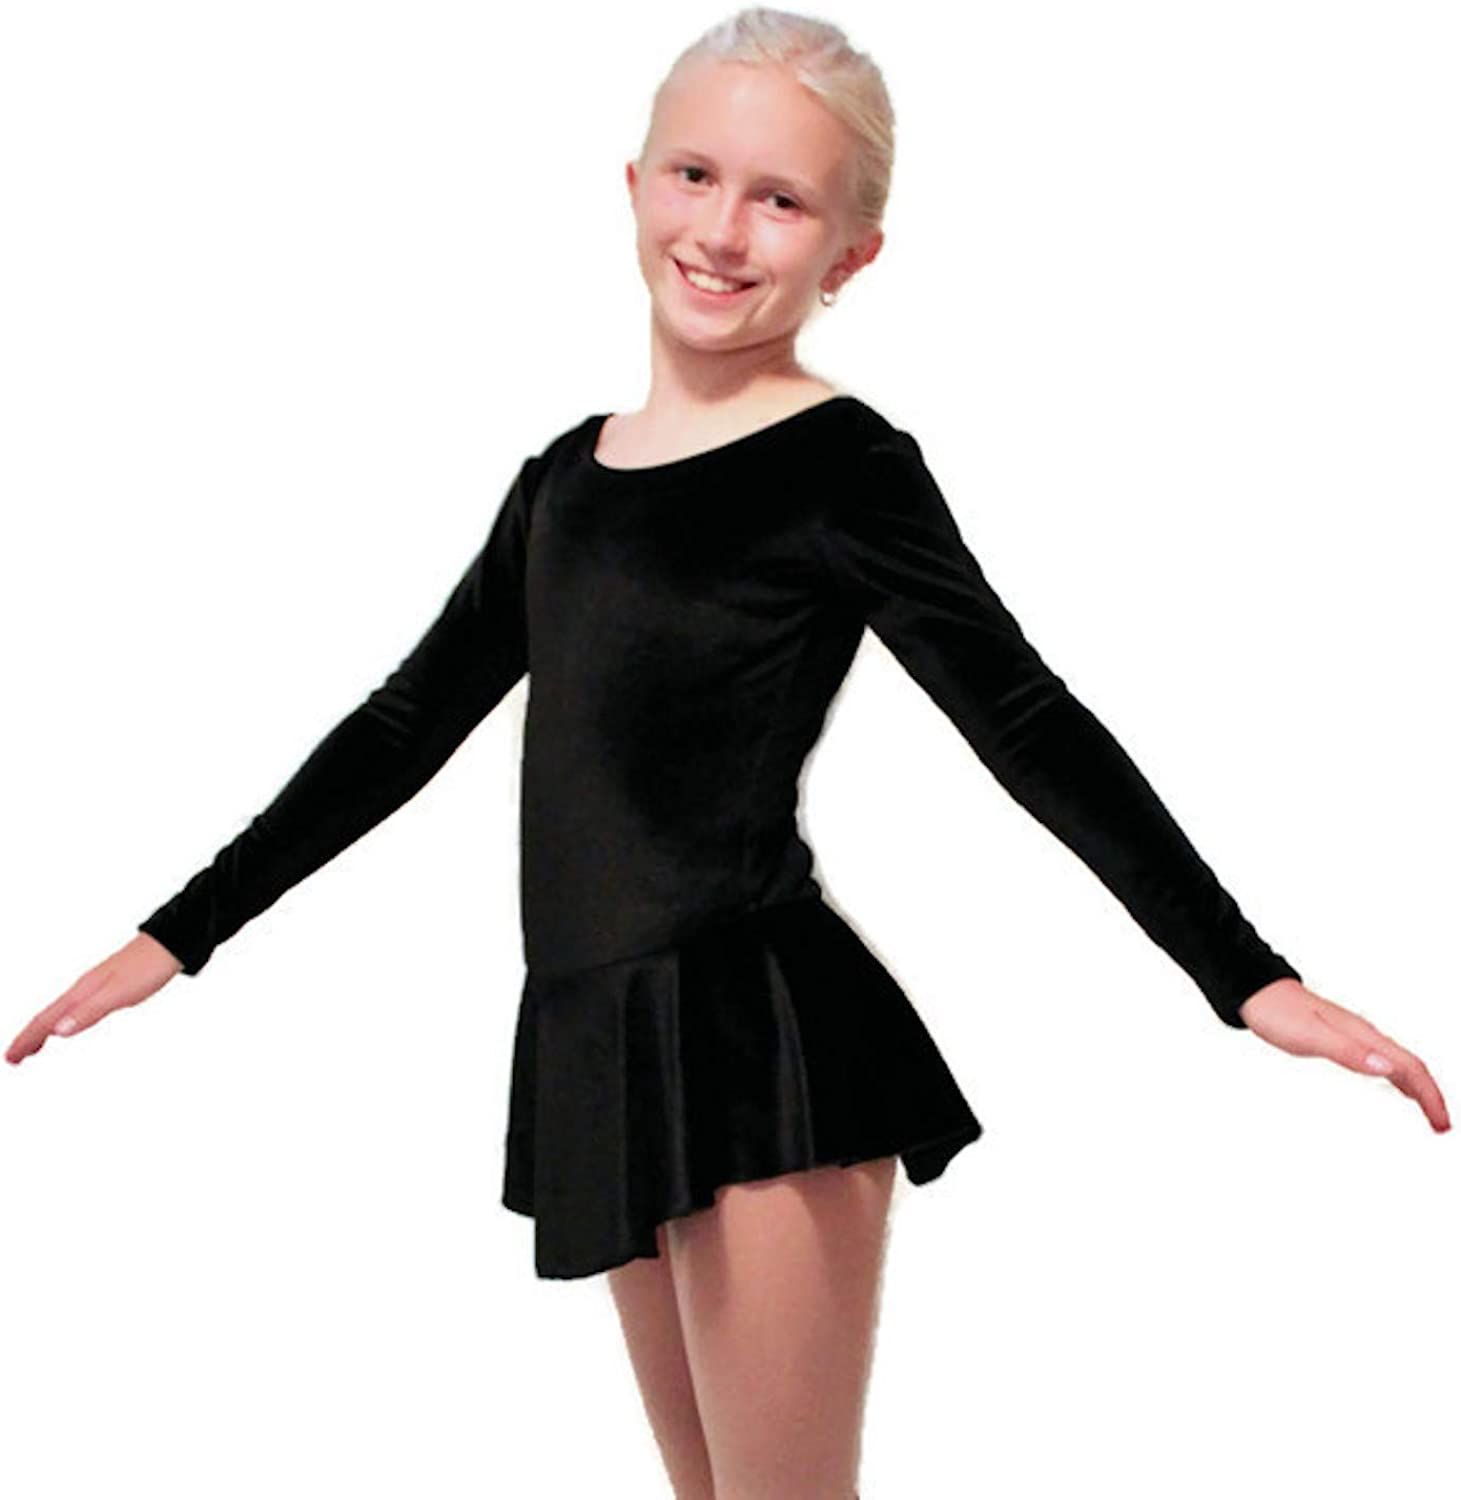 Child Small Roller Skating Practice Black or Testing//Examination Dance Competition Figure Skating Dress for Ice Skating